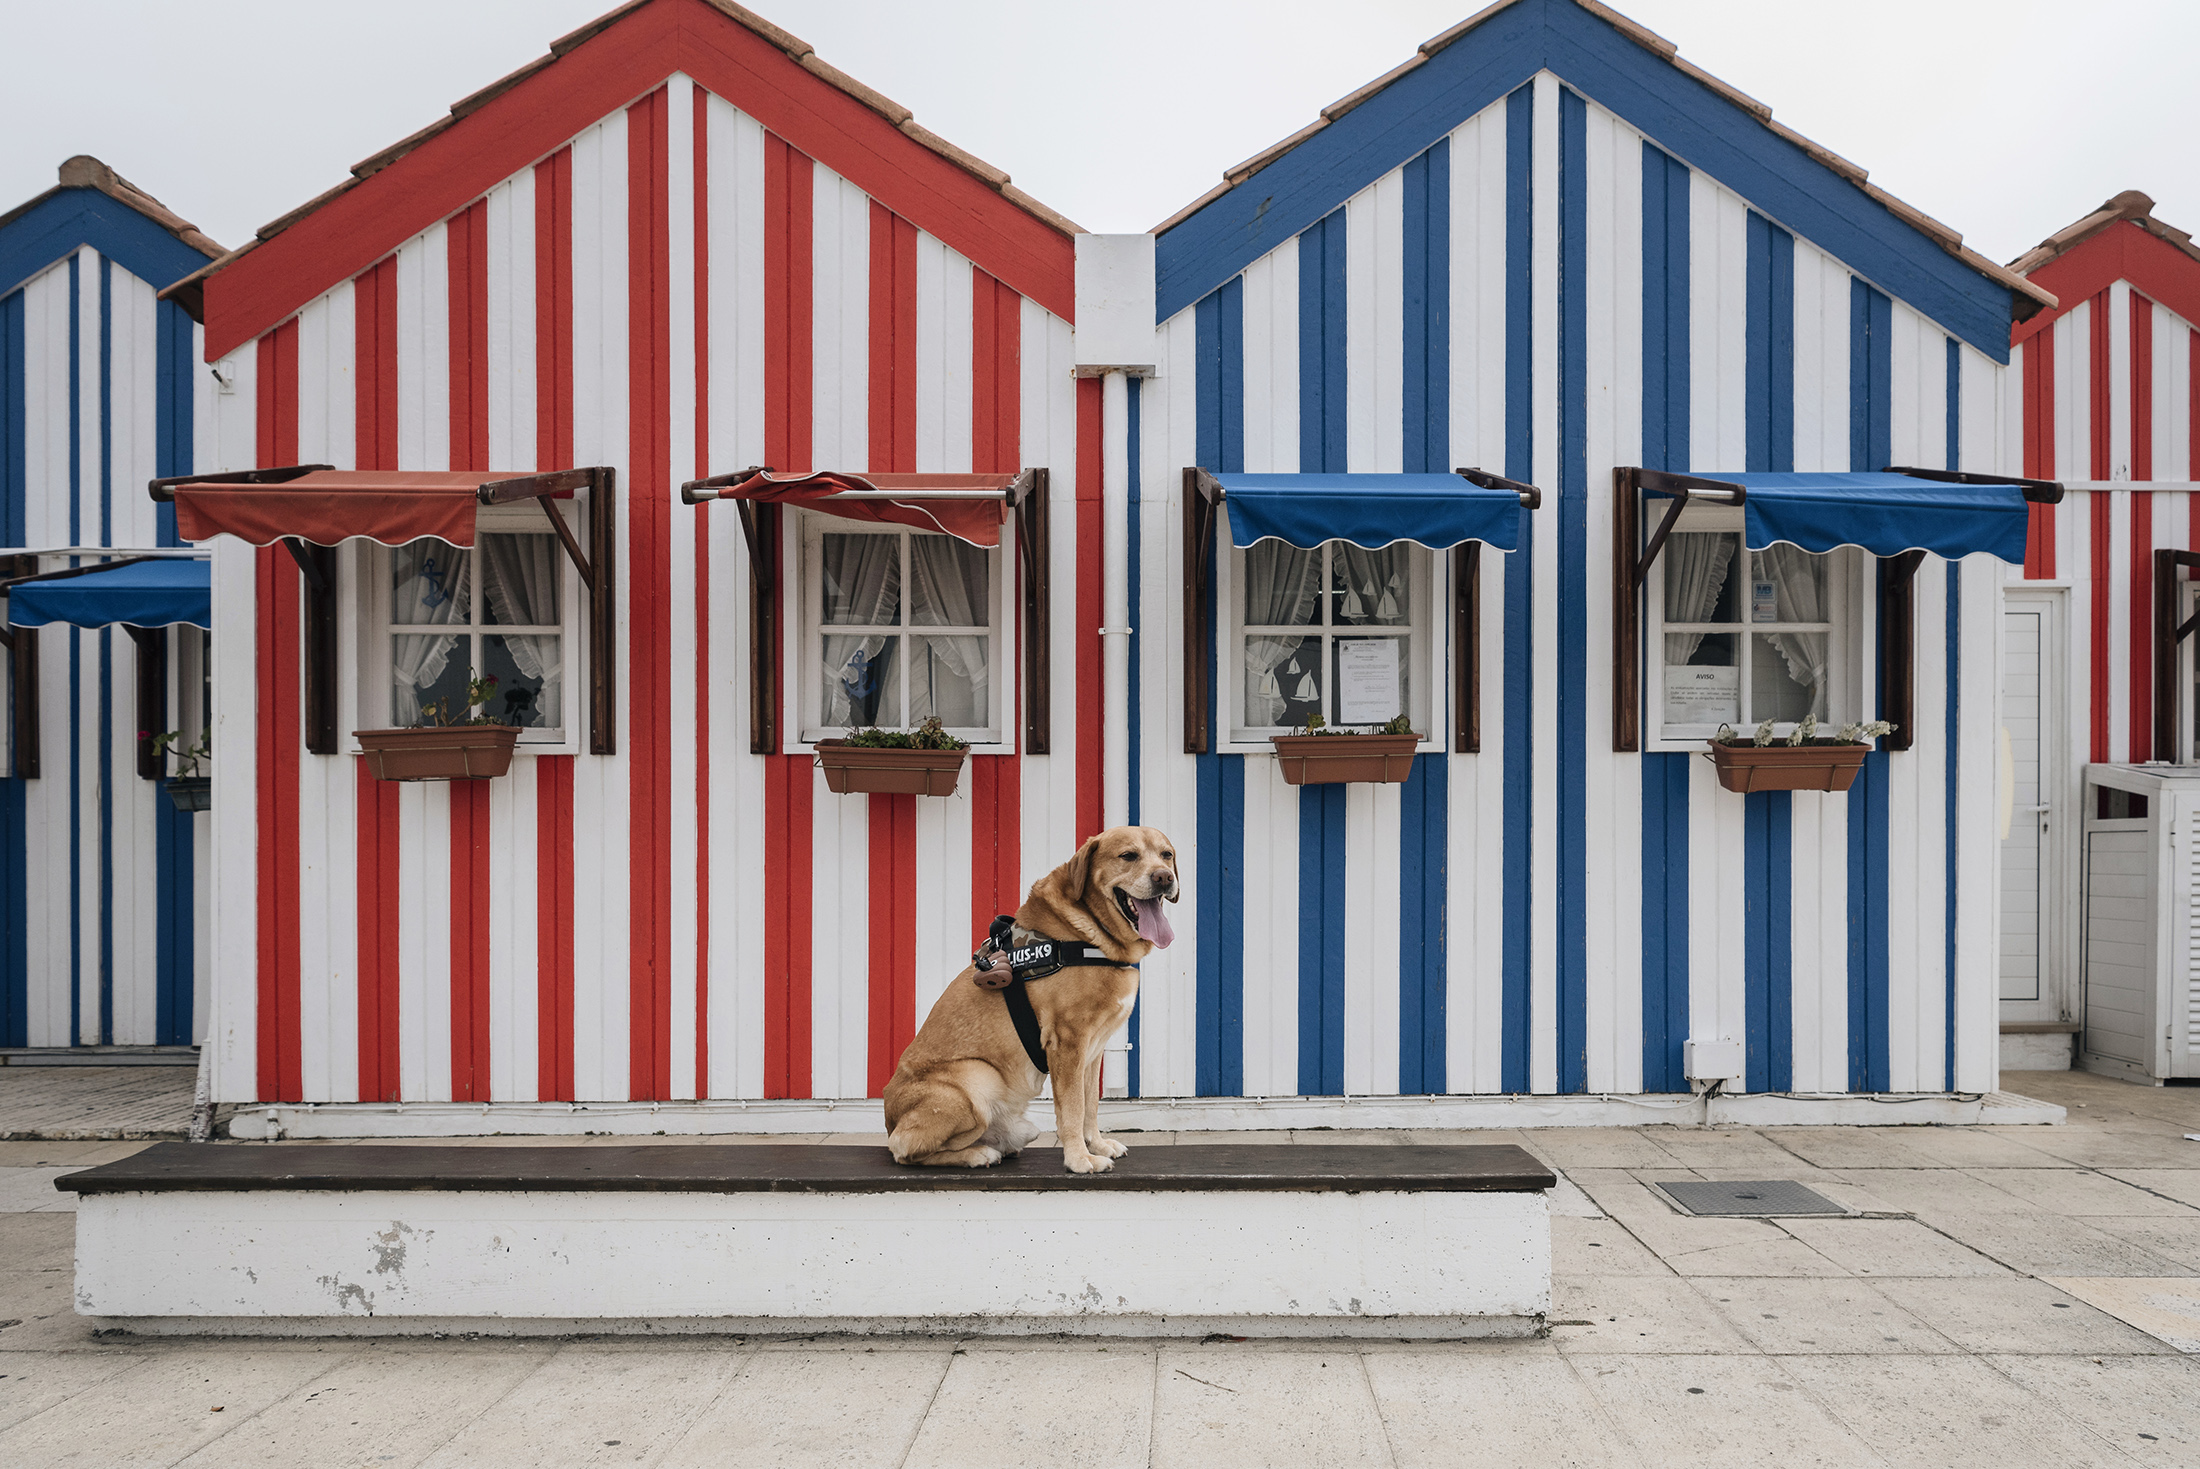 happy dog striped houses traditional from Costa Nova Aveiro Portugal